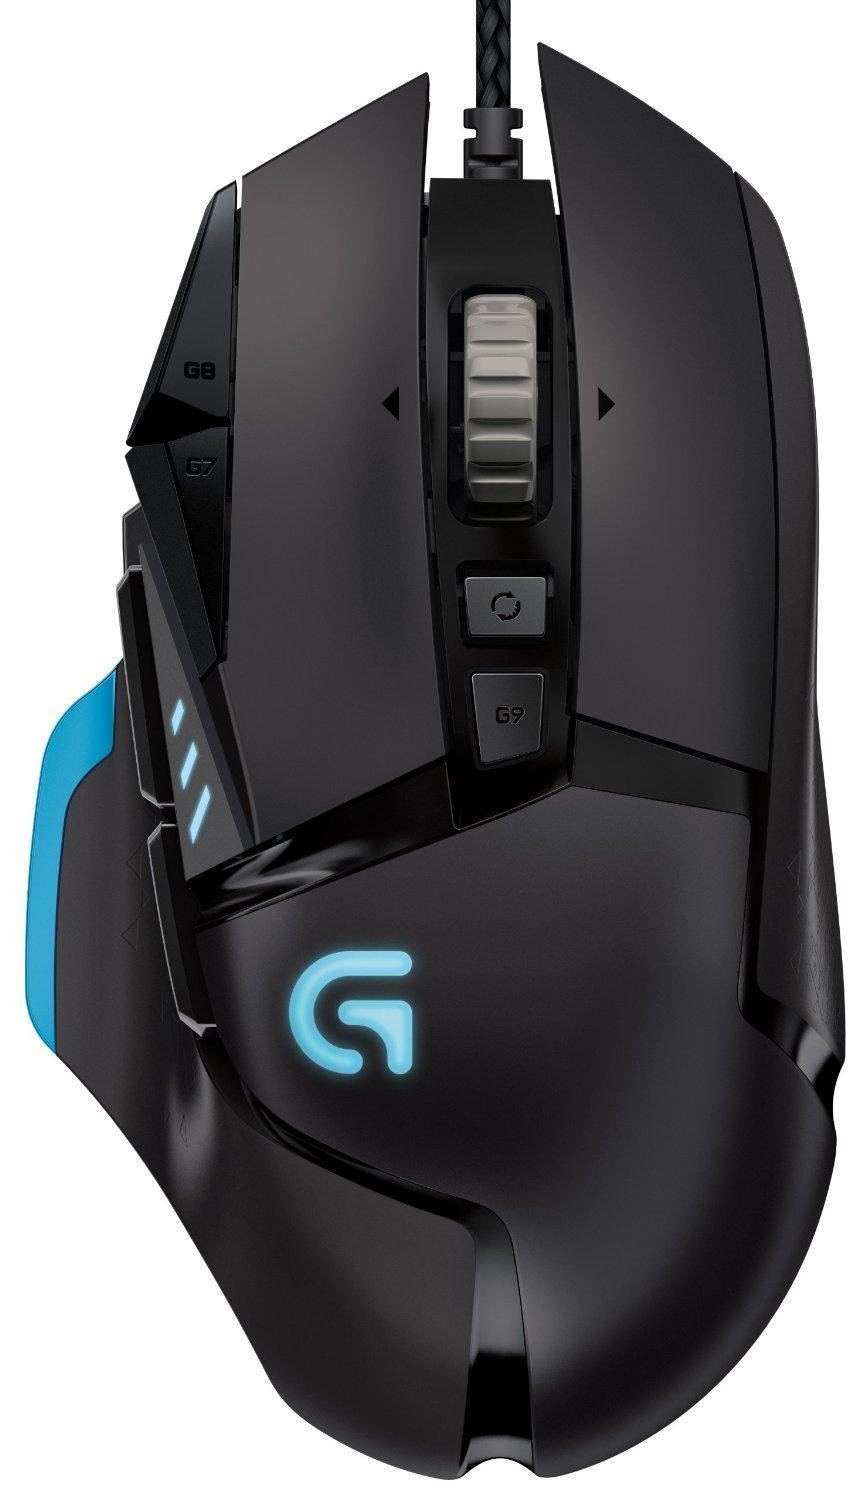 Mouse Gamer : Logitech G502 Proteus Core Tunable con Fully C